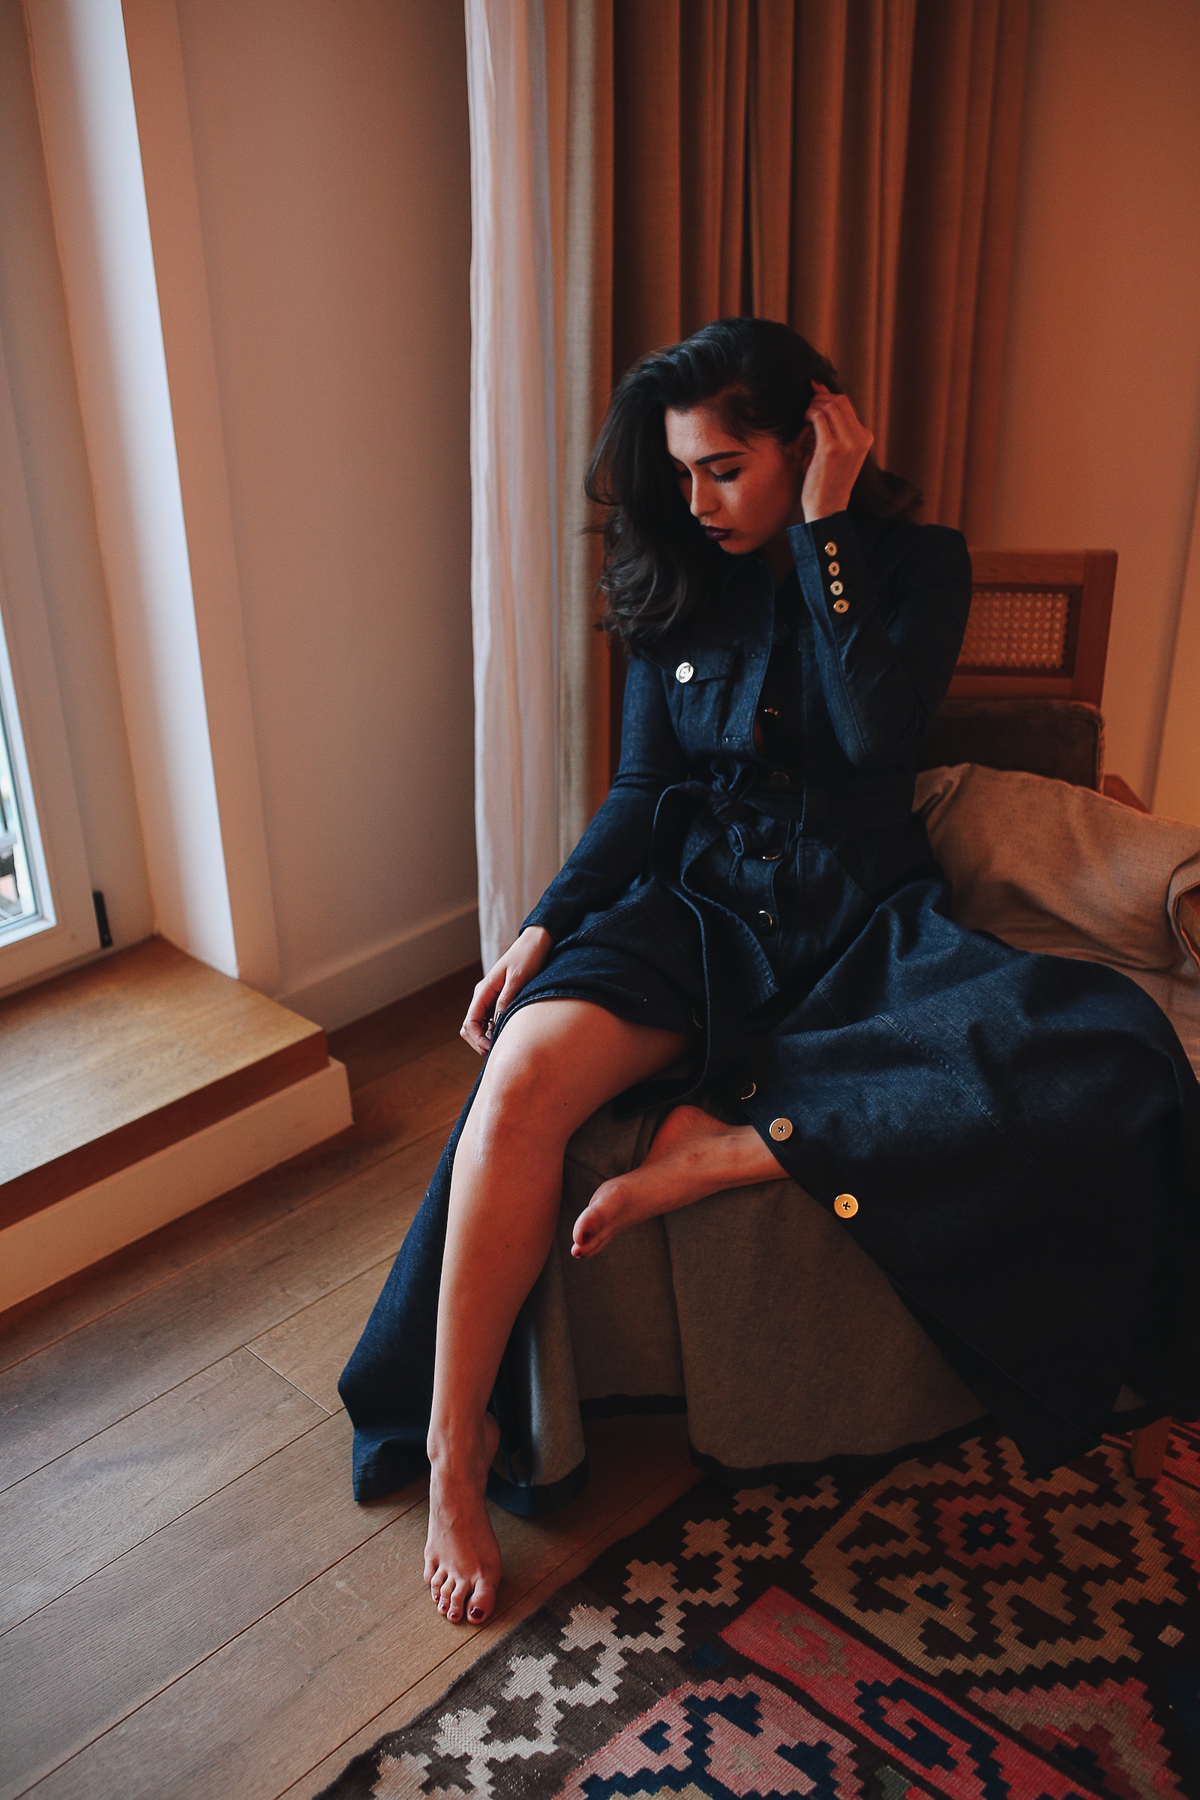 Louis Hotel München-Denimkleid-Talbot Runhof-Prefall Collection-Editorial-Tamara Cueva-The Loud Couture